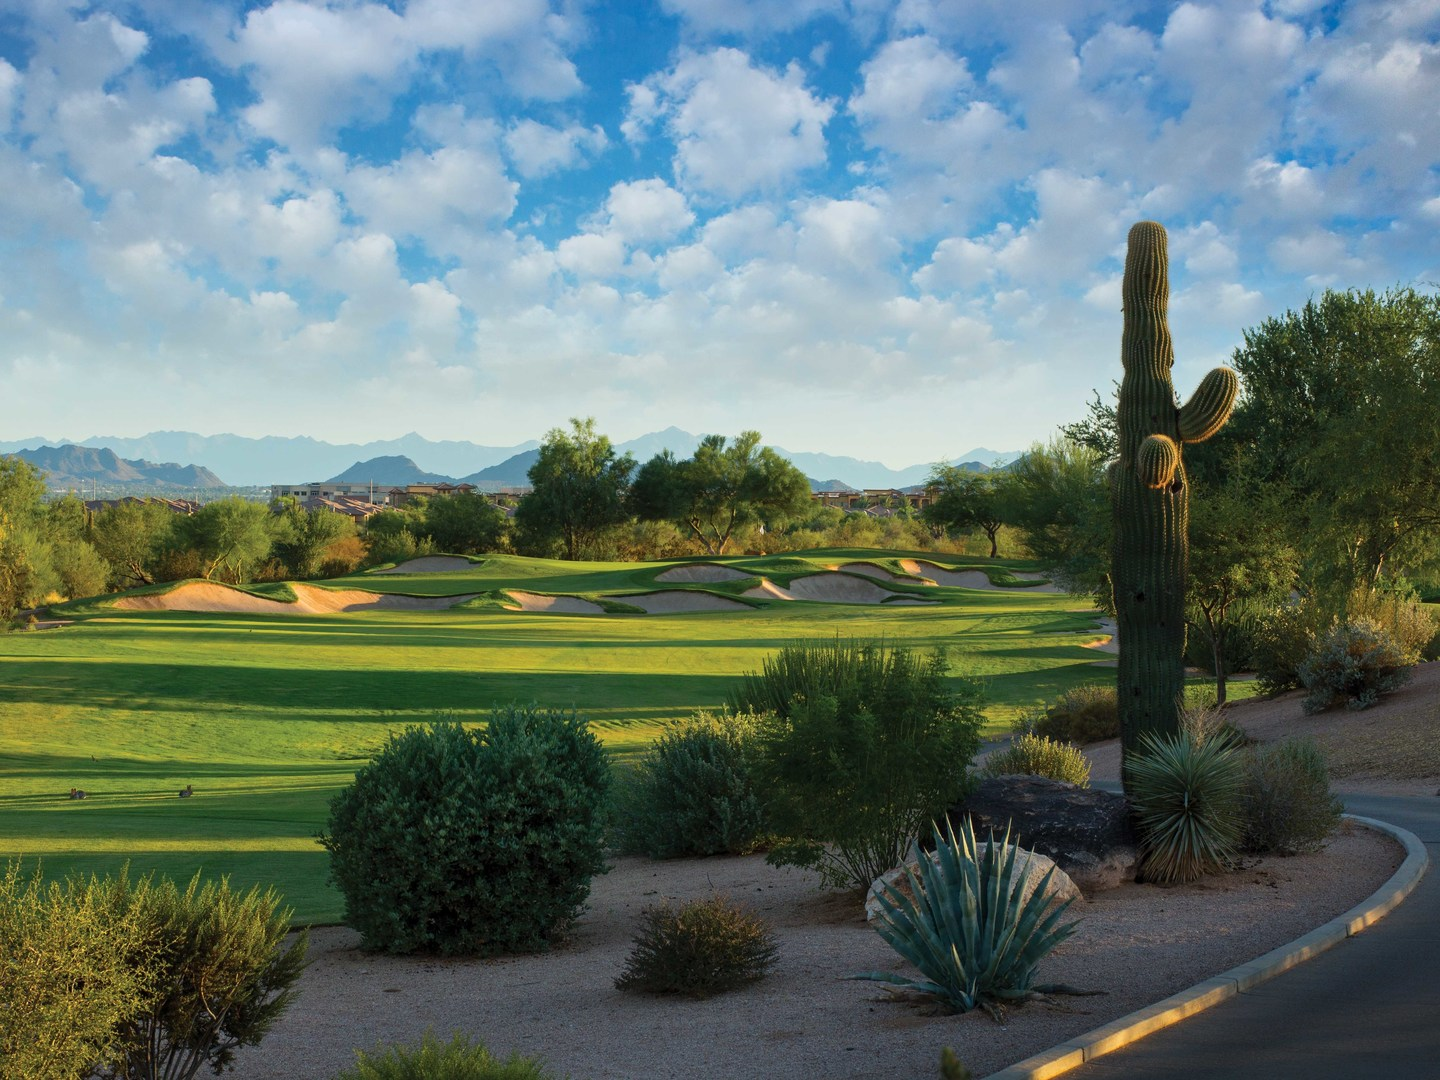 Marriott's Canyon Villas Off property Golf. Marriott's Canyon Villas is located in Phoenix, Arizona United States.